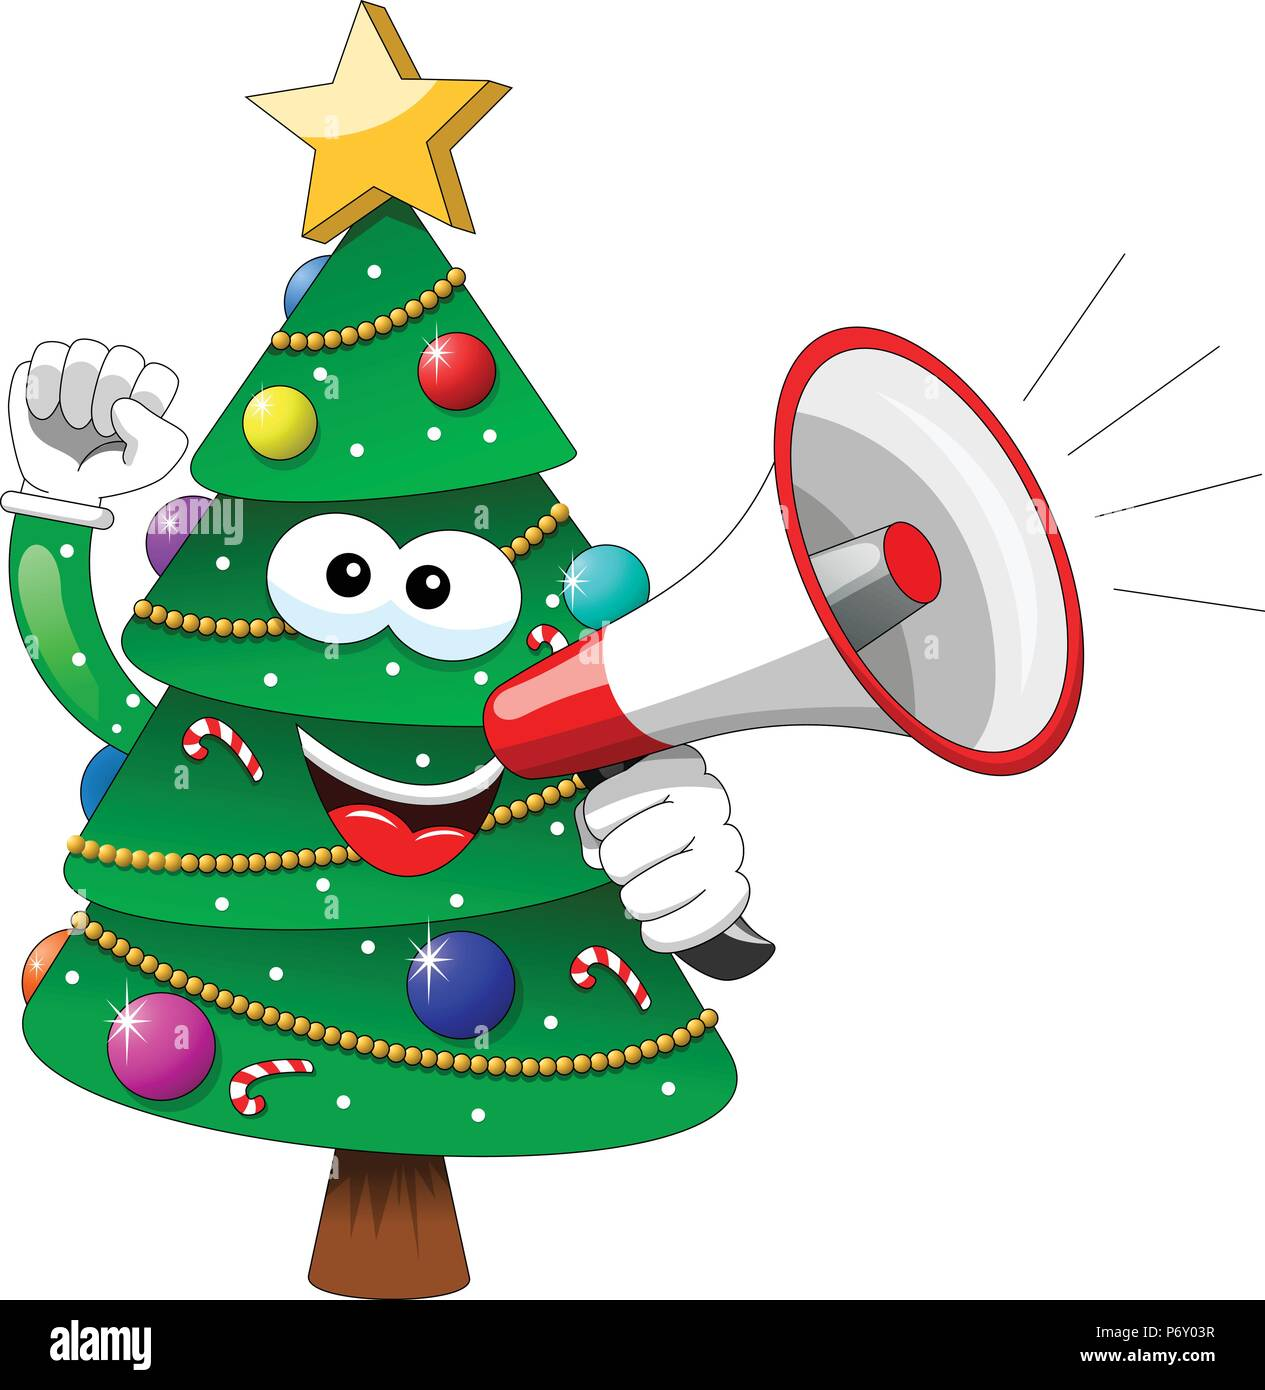 Cartoon Xmas Tree Speaking With Megaphone Isolated Stock Vector Image Art Alamy Download 27,000+ royalty free xmas tree cartoon vector images. https www alamy com cartoon xmas tree speaking with megaphone isolated image210805163 html